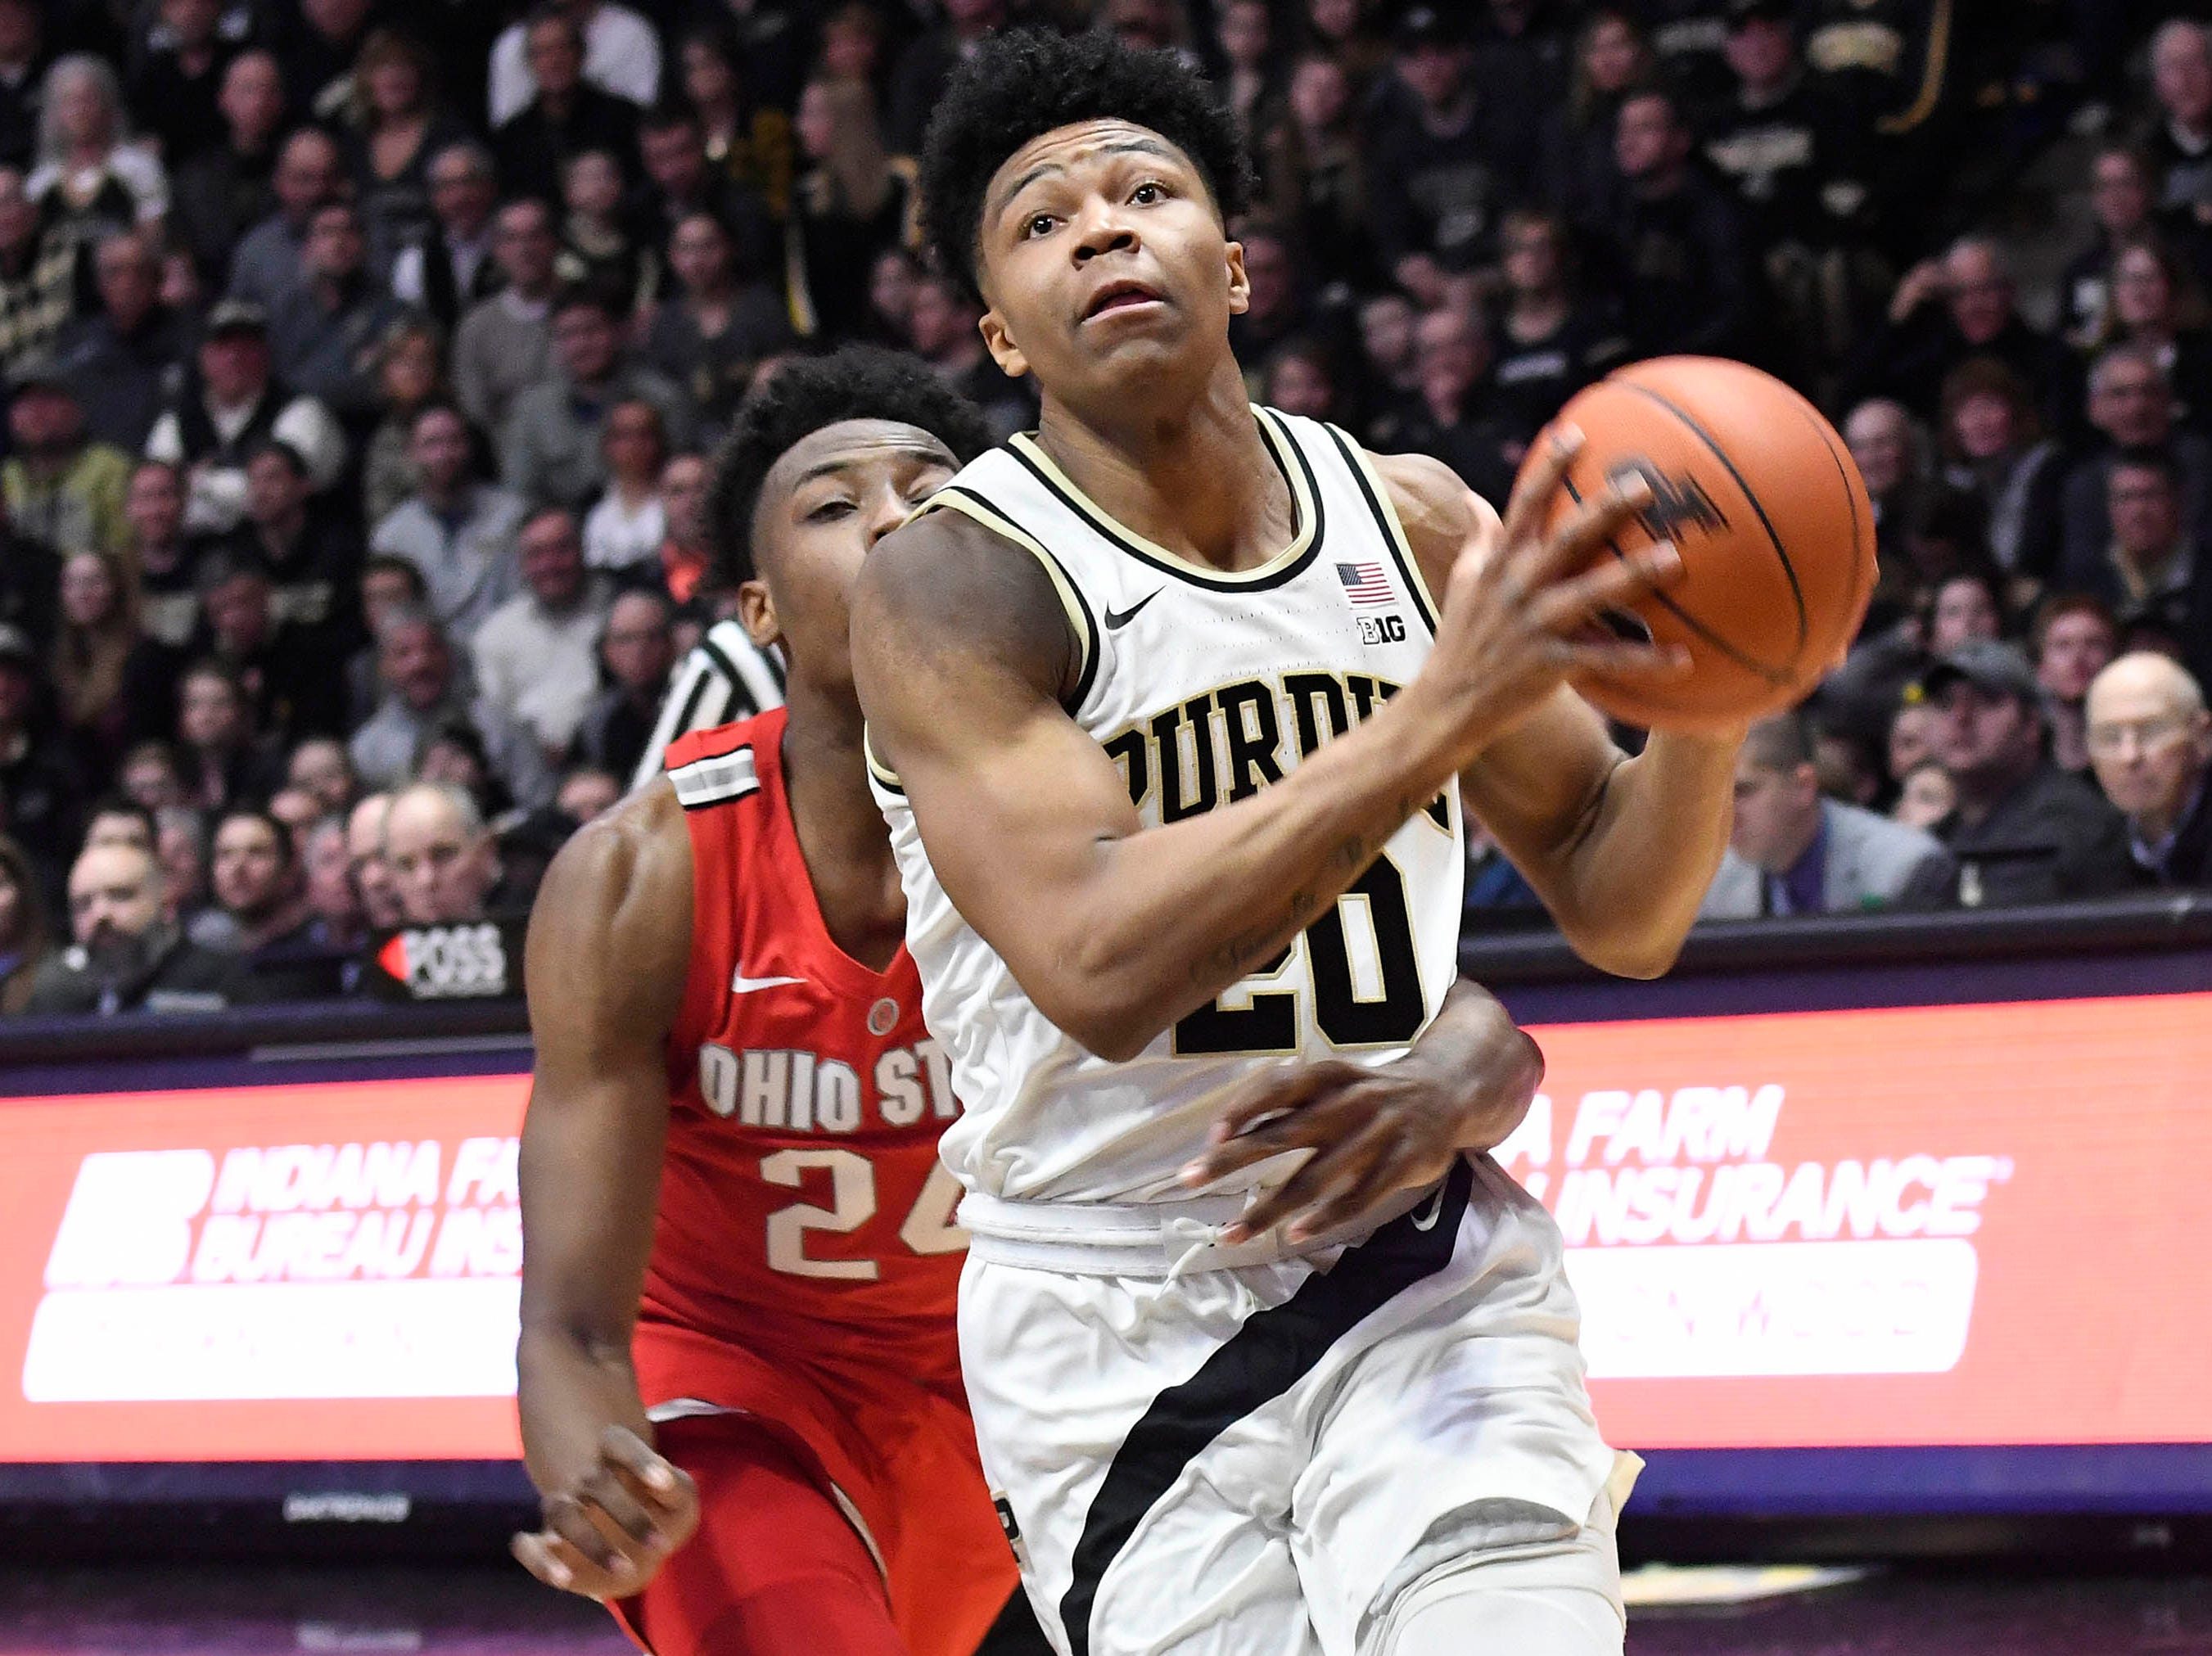 Mar 2, 2019; West Lafayette, IN, USA; Purdue Boilermakers guard Nojel Eastern (20) drives past Ohio State Buckeye guard Andre Wesson in the first half at Mackey Arena. Mandatory Credit: Sandra Dukes-USA TODAY Sports